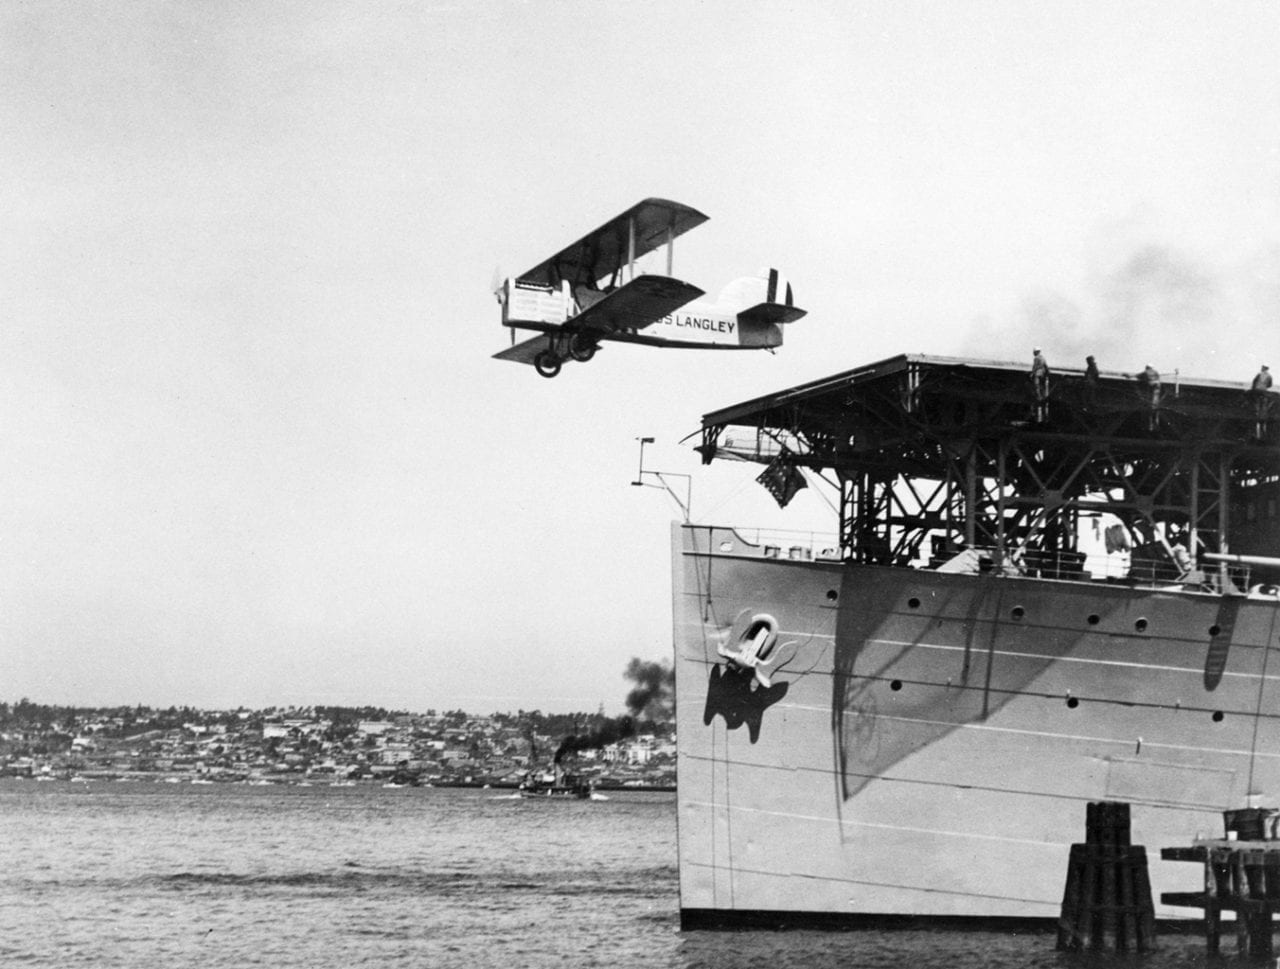 A U.S. Navy Douglas DT-2 torpedo bomber taking off from the flight deck of the aircraft carrier USS Langley (CV 1), which was docked at the carrier pier at Naval Air Station North Island, San Diego, Calif., circa 1925. This was a test to determine the feasibility of using flush-deck catapults to launch wheeled aircraft from ships. Stone served as a technical expert on naval aviation, working on catapult systems and arresting gear for Langley and the USS Lexington (CV 2) and USS Saratoga (CV 3). A U.S. Navy Douglas DT-2 torpedo bomberis catapulted from the flight deck of the Langley, which was dockedat the carrier pier at Naval Air Station North Island, San Diego, Calif.,circa 1925. This was a test to determine the feasibility of using flushdeckcatapults to launch wheeled aircraft from ships. Stone servedas a technical expert in naval aviation, working on catapult systemsand arresting gear for Langley and the USS Lexington (CV 2) andUSS Saratoga (CV 3). U.S. Naval Historical Center photo